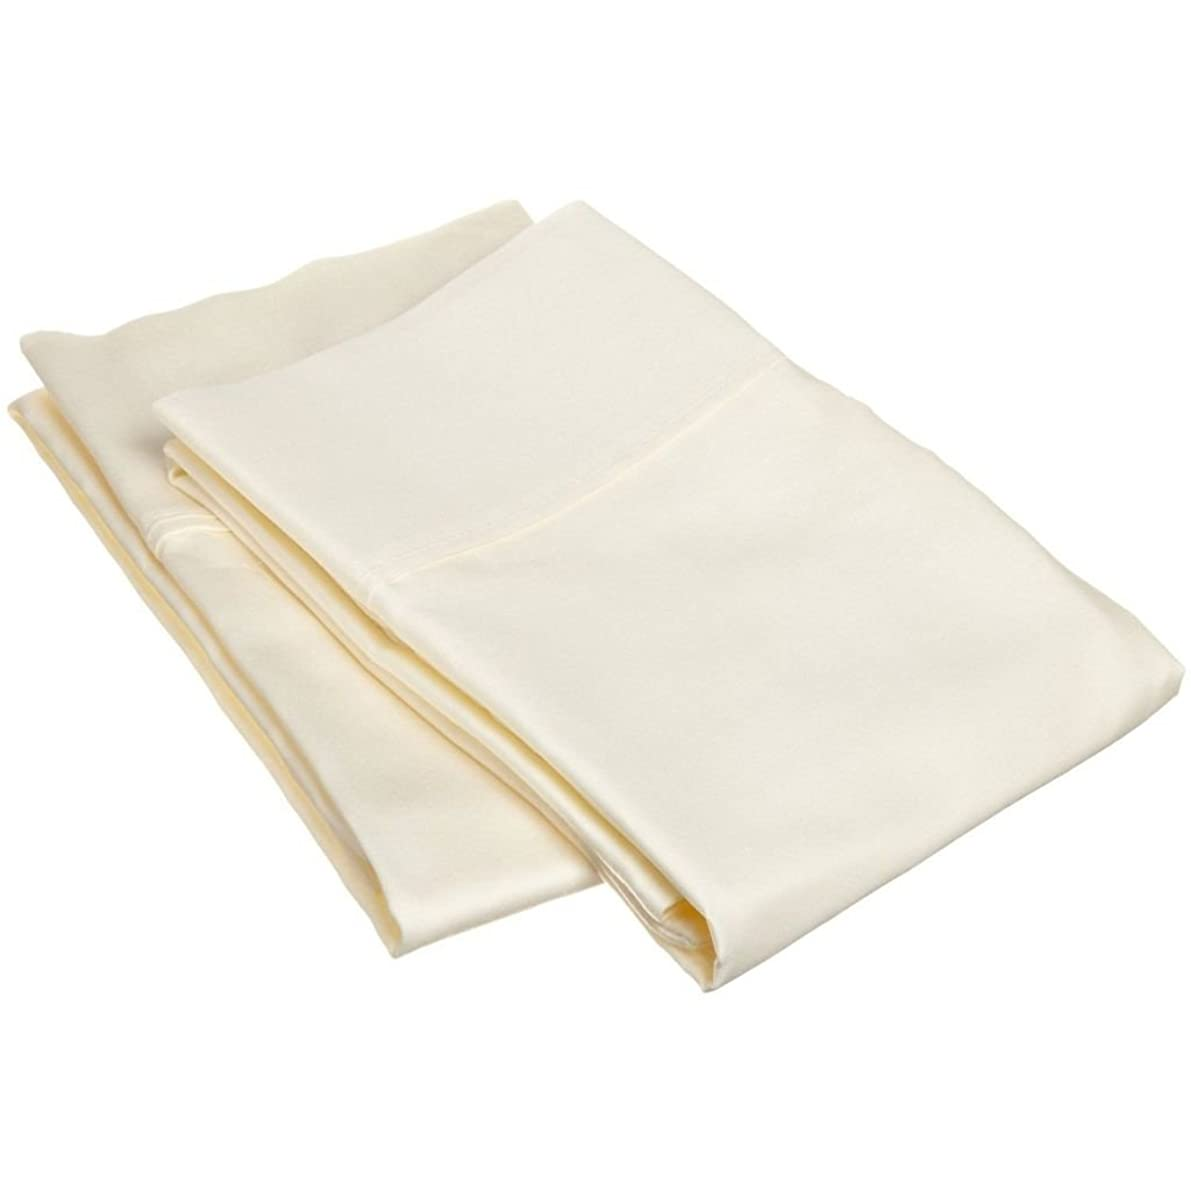 Rajlinen Ultra Soft Sateen Finish 2 Qty Pillow Case Egyptian Cotton 600-Thread-Count Bland Durable Ivory Solid Standard Size